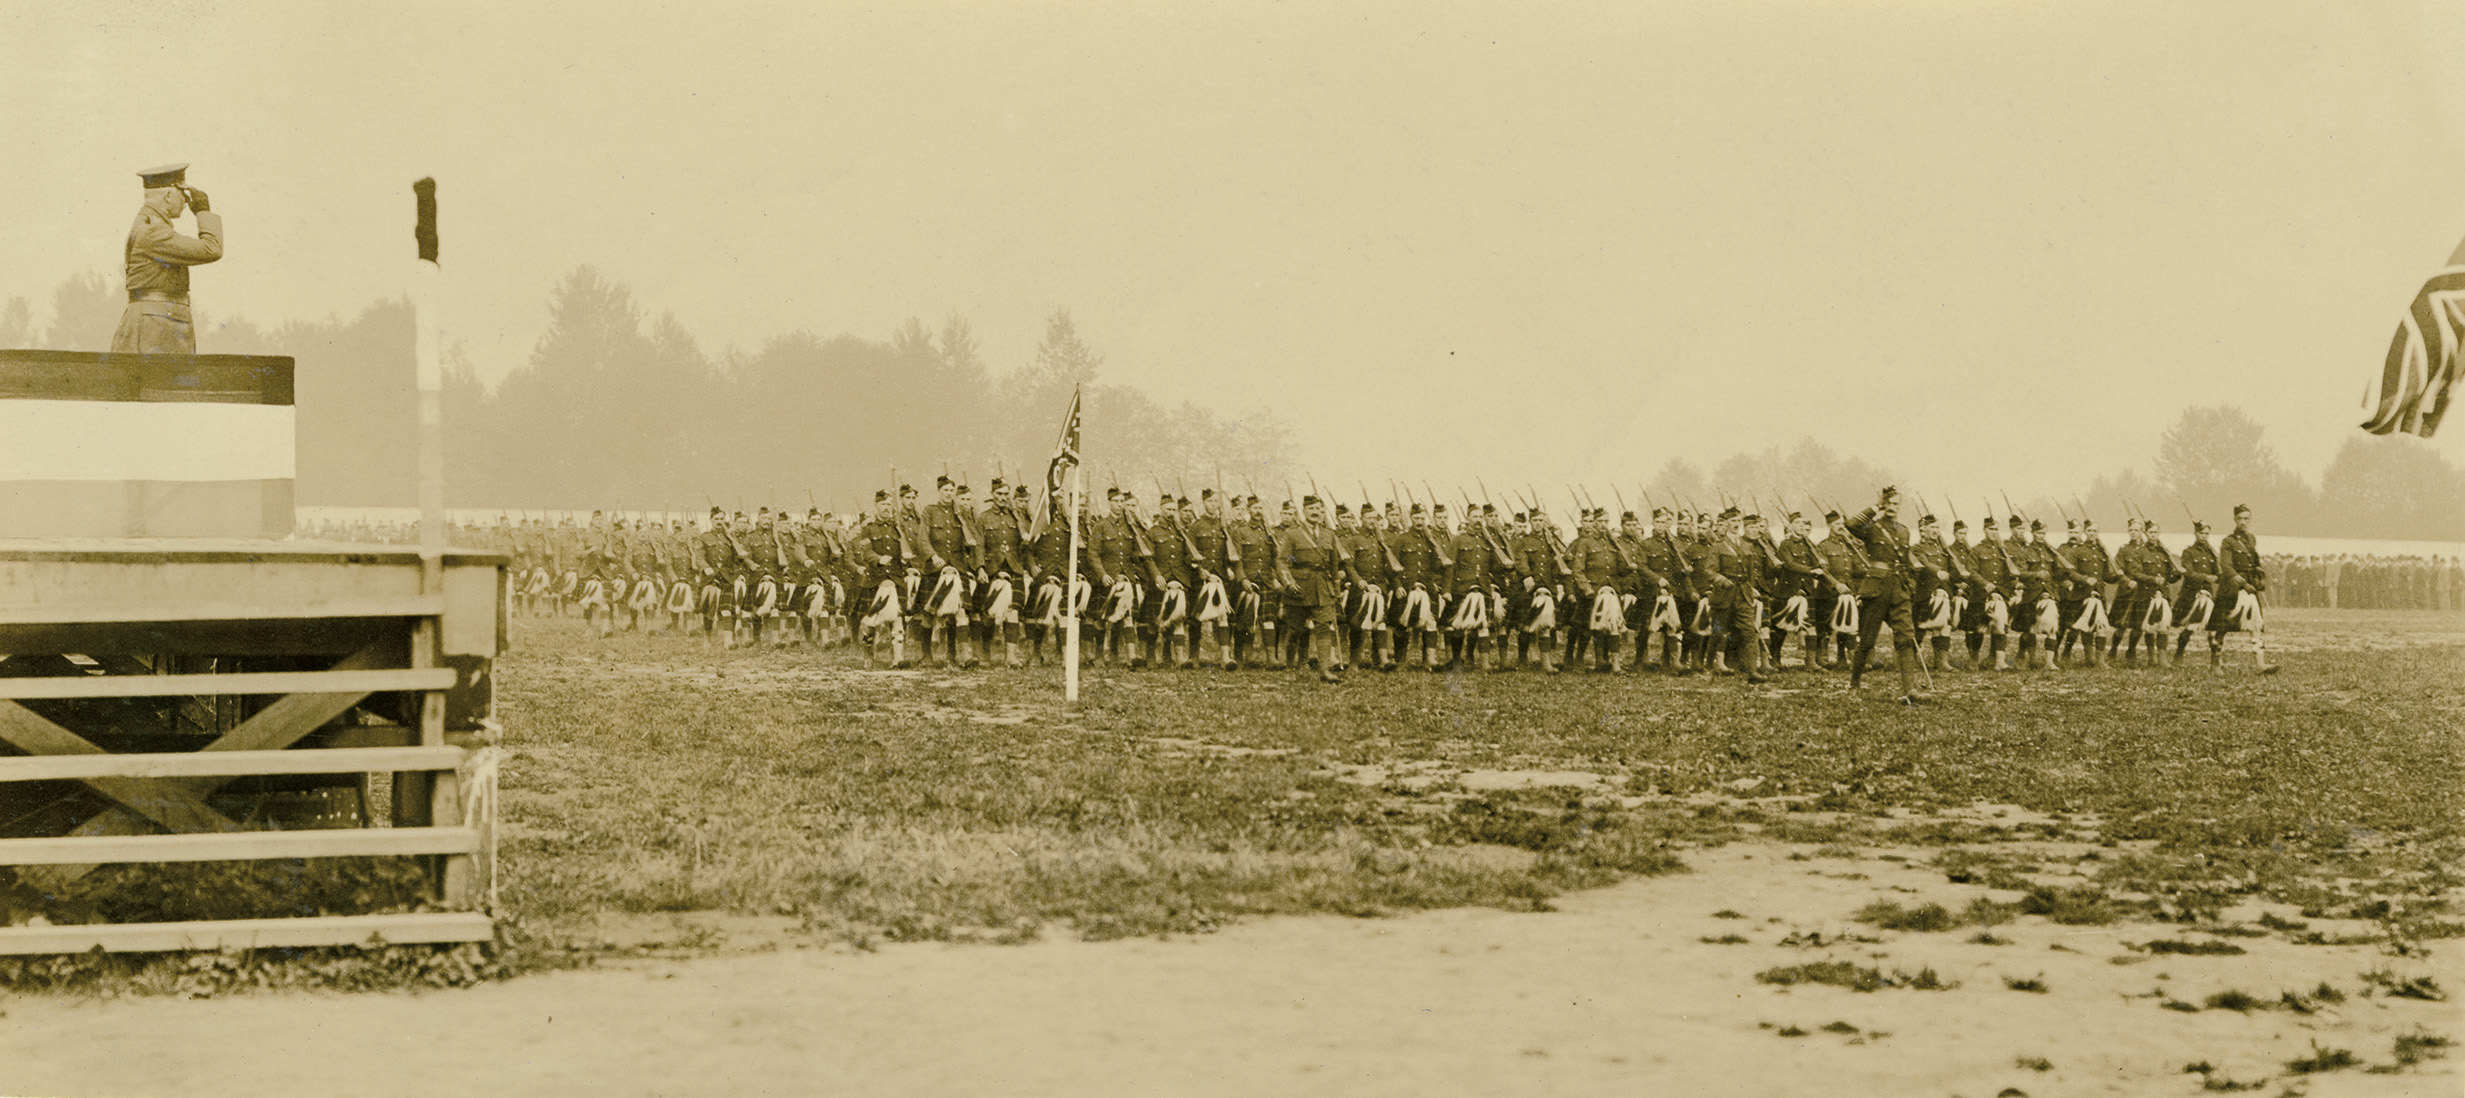 H.R.H. The Duke of Connaught, taking the salute during an inspection of the 72nd Battalion Seaforth Highlanders, at Hastings Park on September 16th, 1915. These recruits were received by the unit only twelve days earlier, on September 4th.